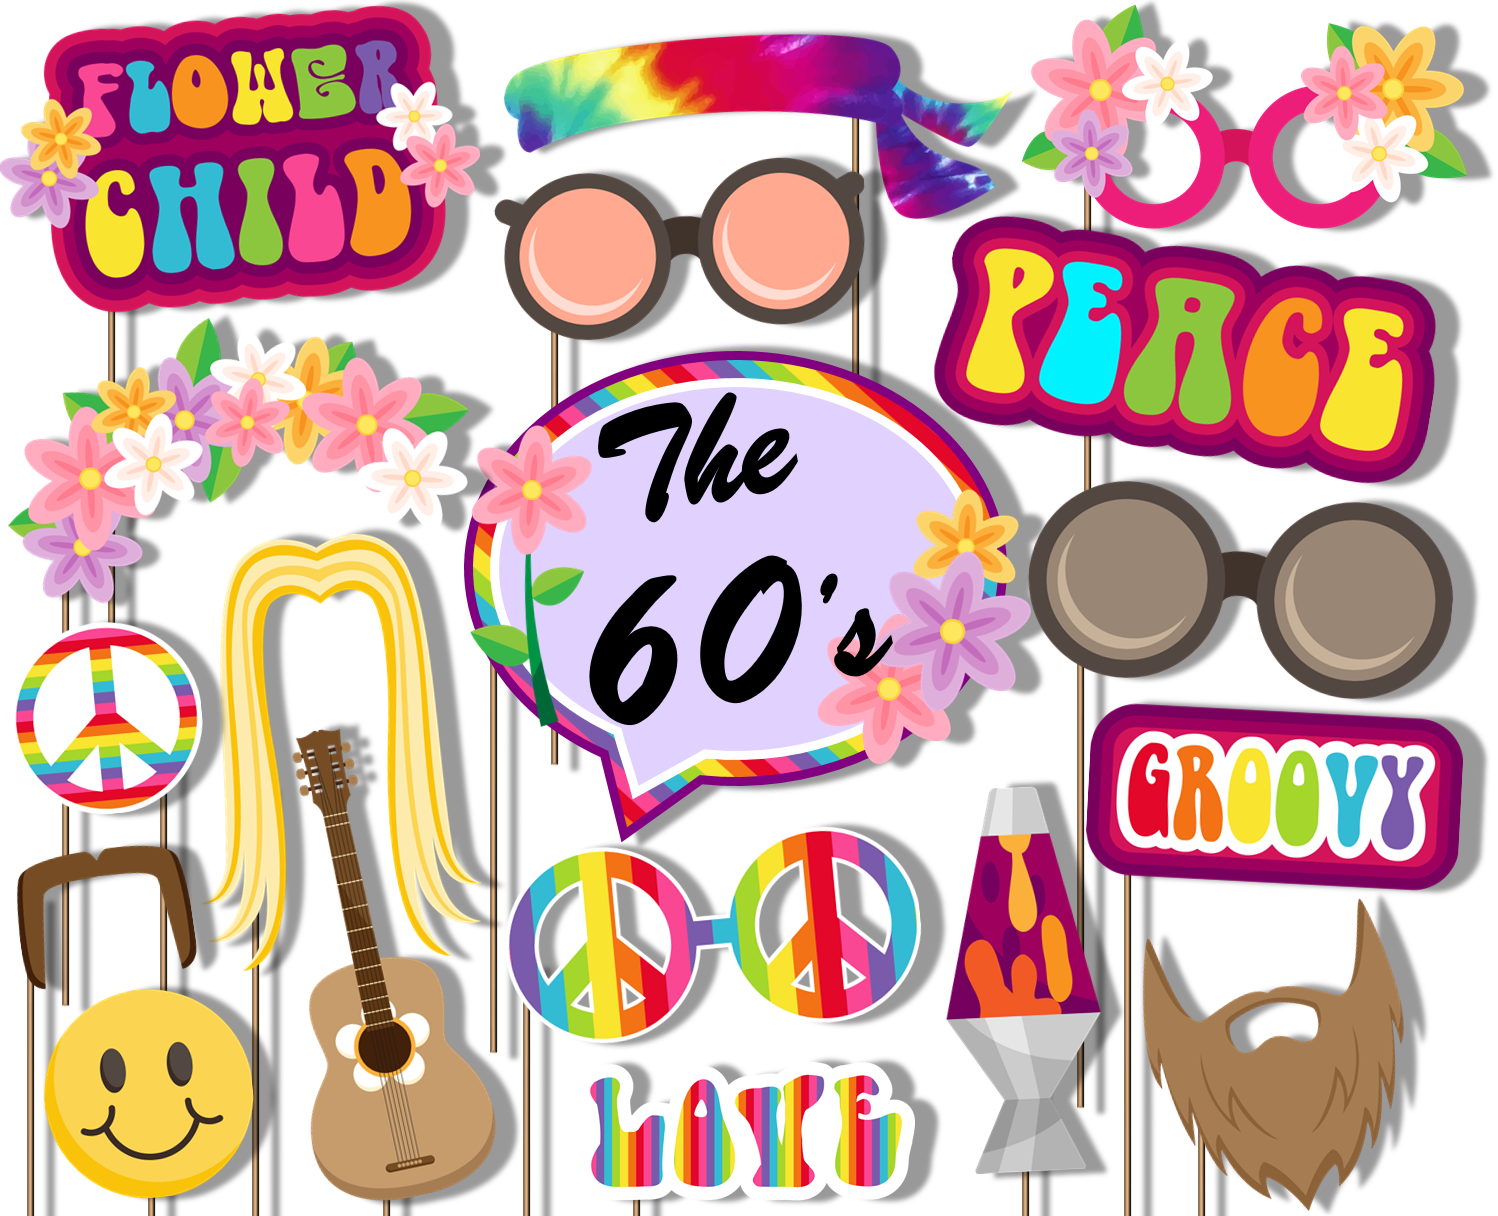 60's Hippie Decade Photo Booth Props 20pcs Assembled - BirthdayGalore.com